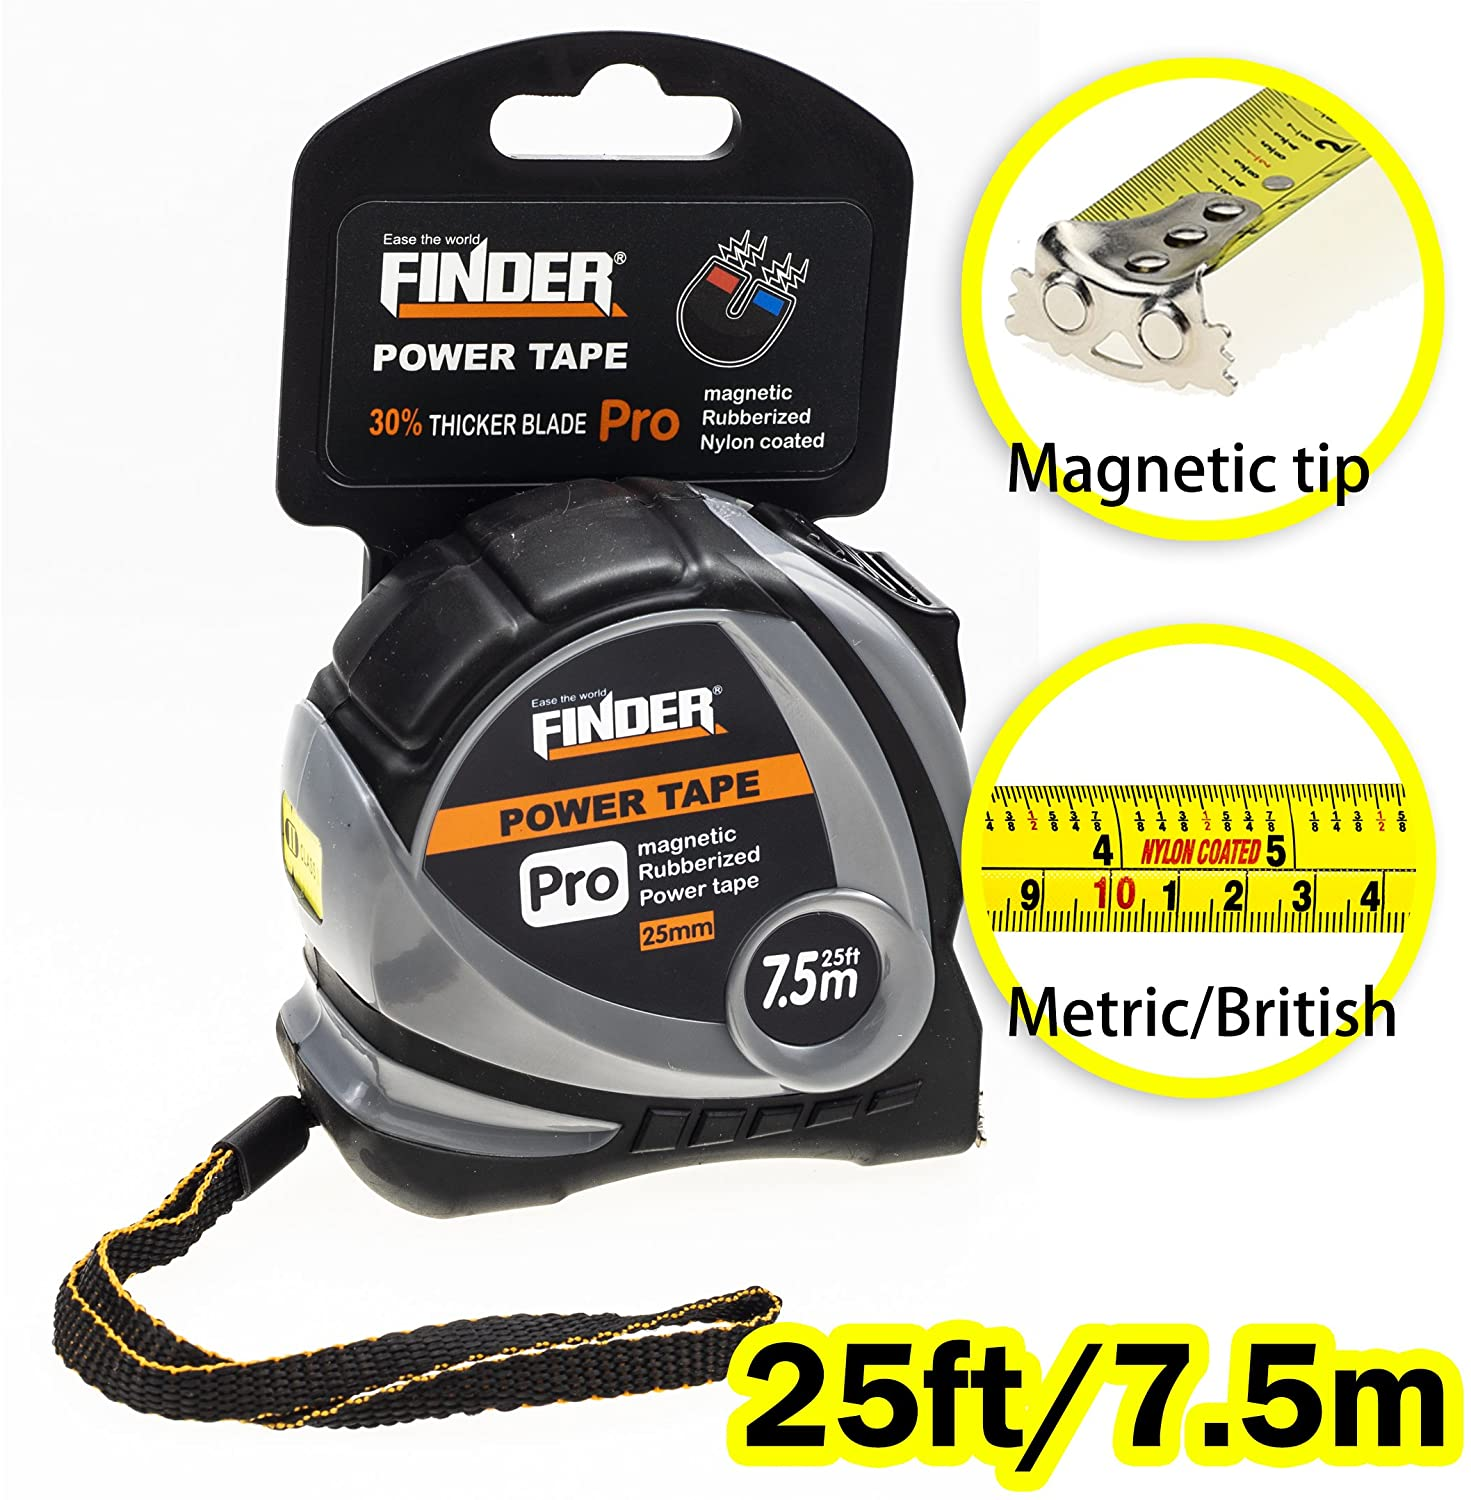 Finder Magnetic Tape Measure, Measuring Tape Self Lock 25-Foot  (7.5 Meter) Metric and Inches Retractable Measuring Tape with Wrist Strap for Construction, Craft, Home, Carpentry Measurement